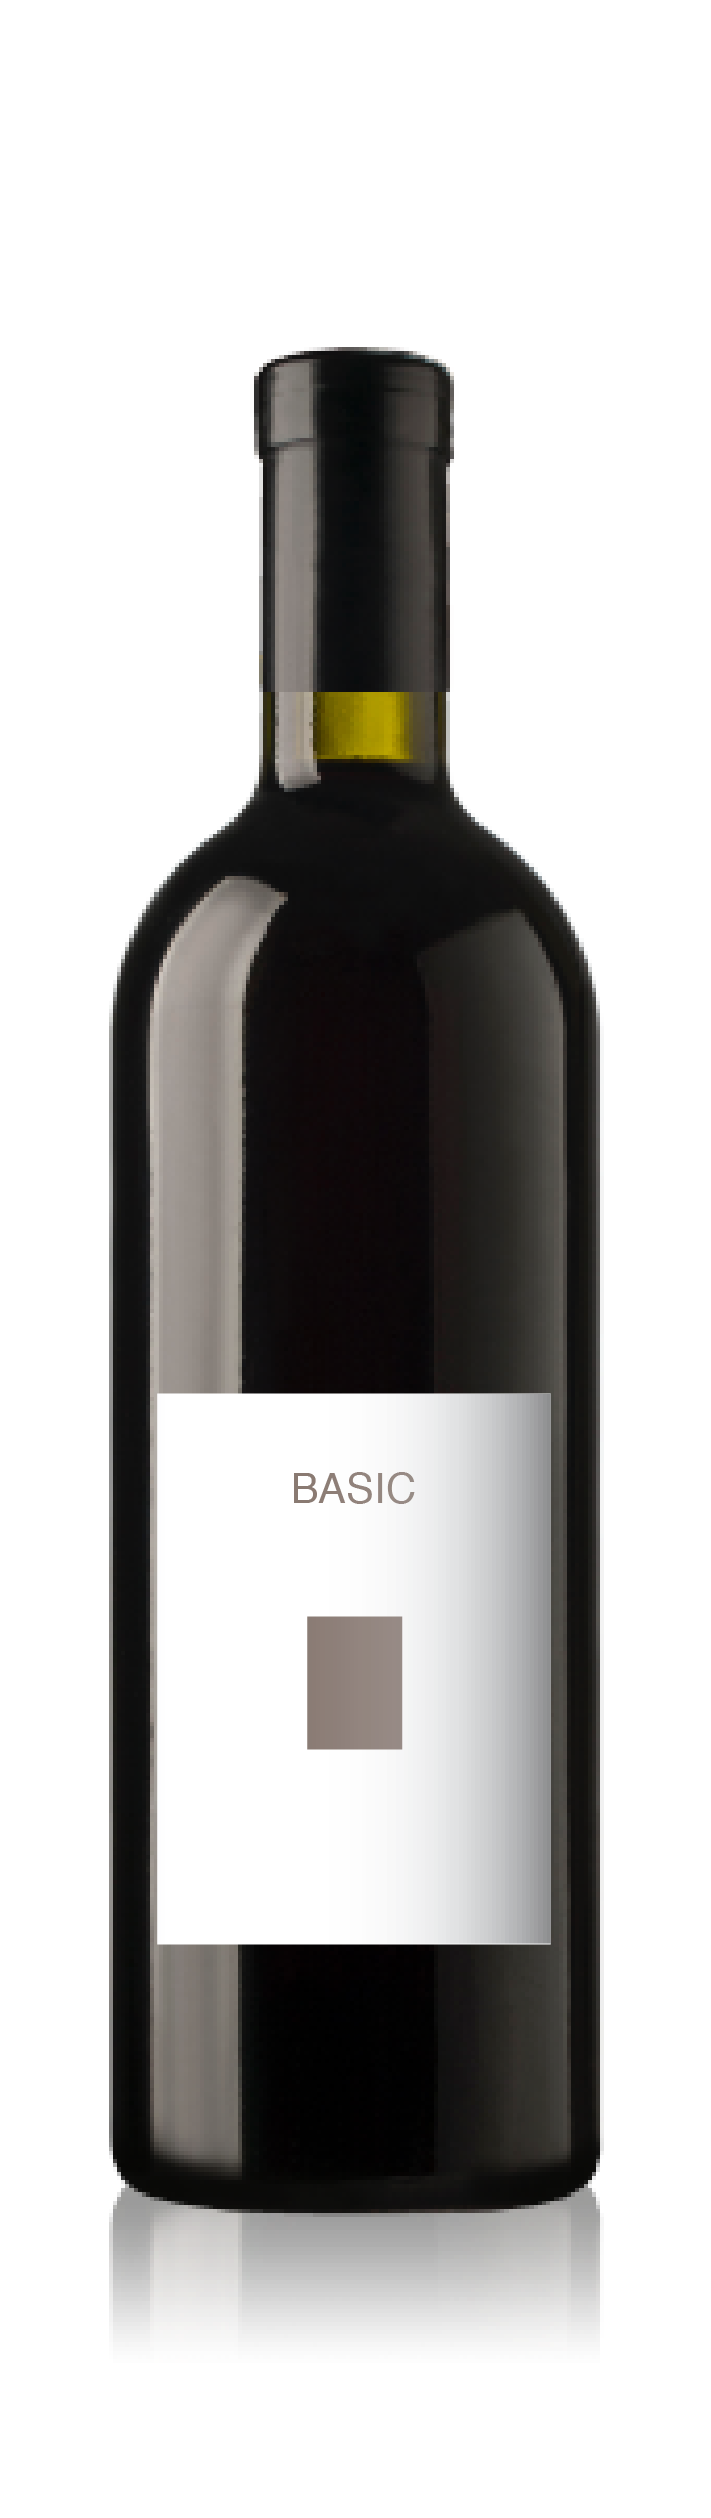 Bordeaux bottle with a blank basic front label from CrushTag